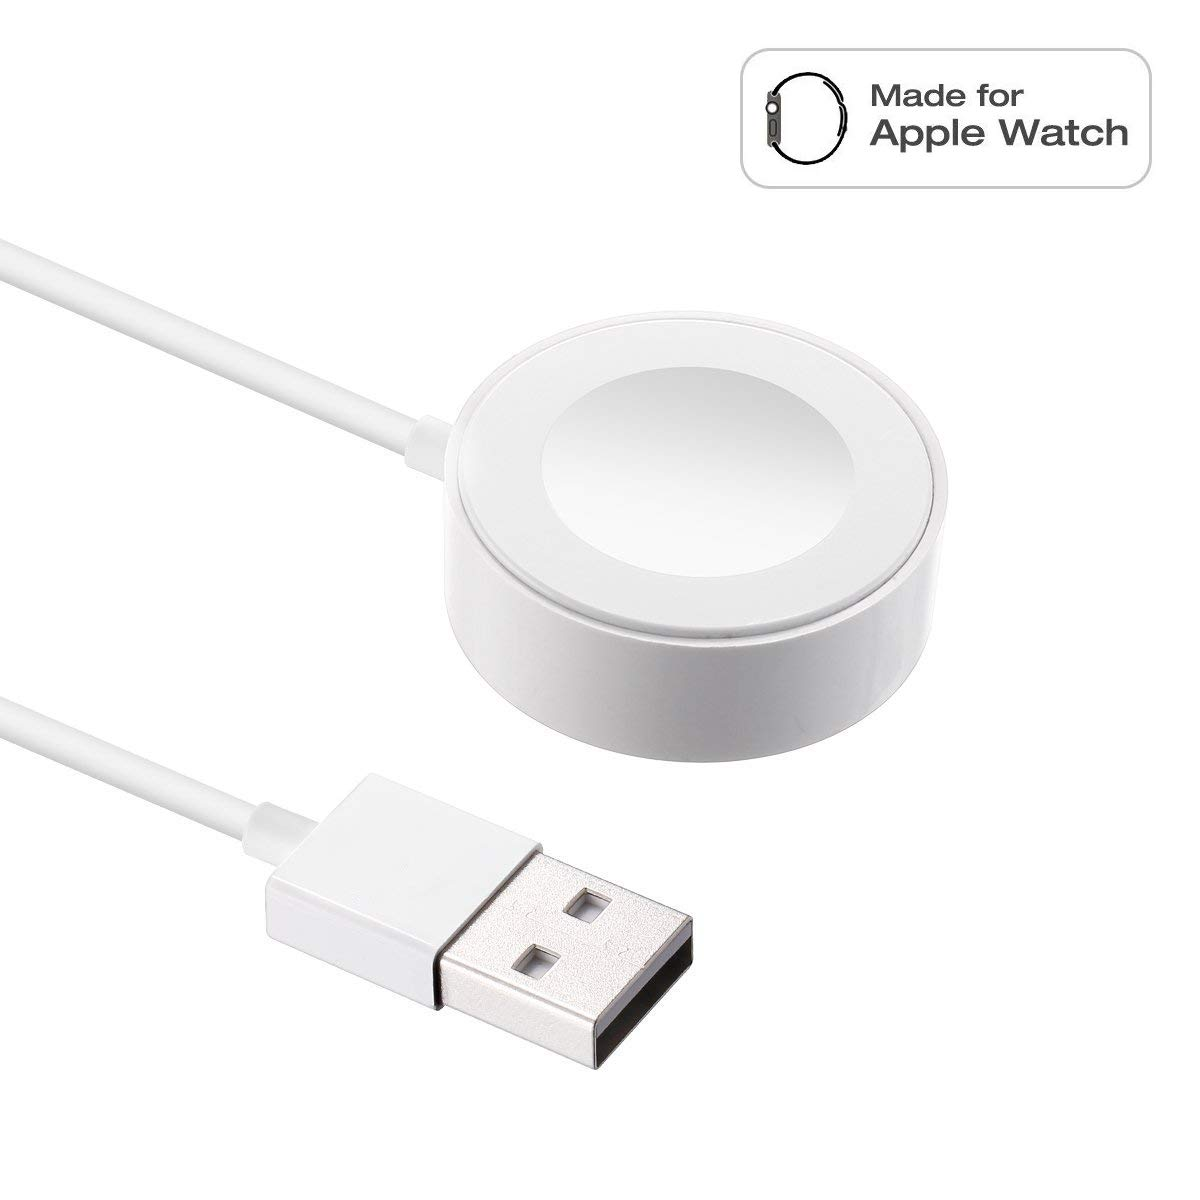 Compatible with Apple Watch Magnetic Wireless Charger Pad Charging Cable Cord Compatible with Apple Watch iWatch 38 mm/42 mm Series 1/2/3, 3.3Ft